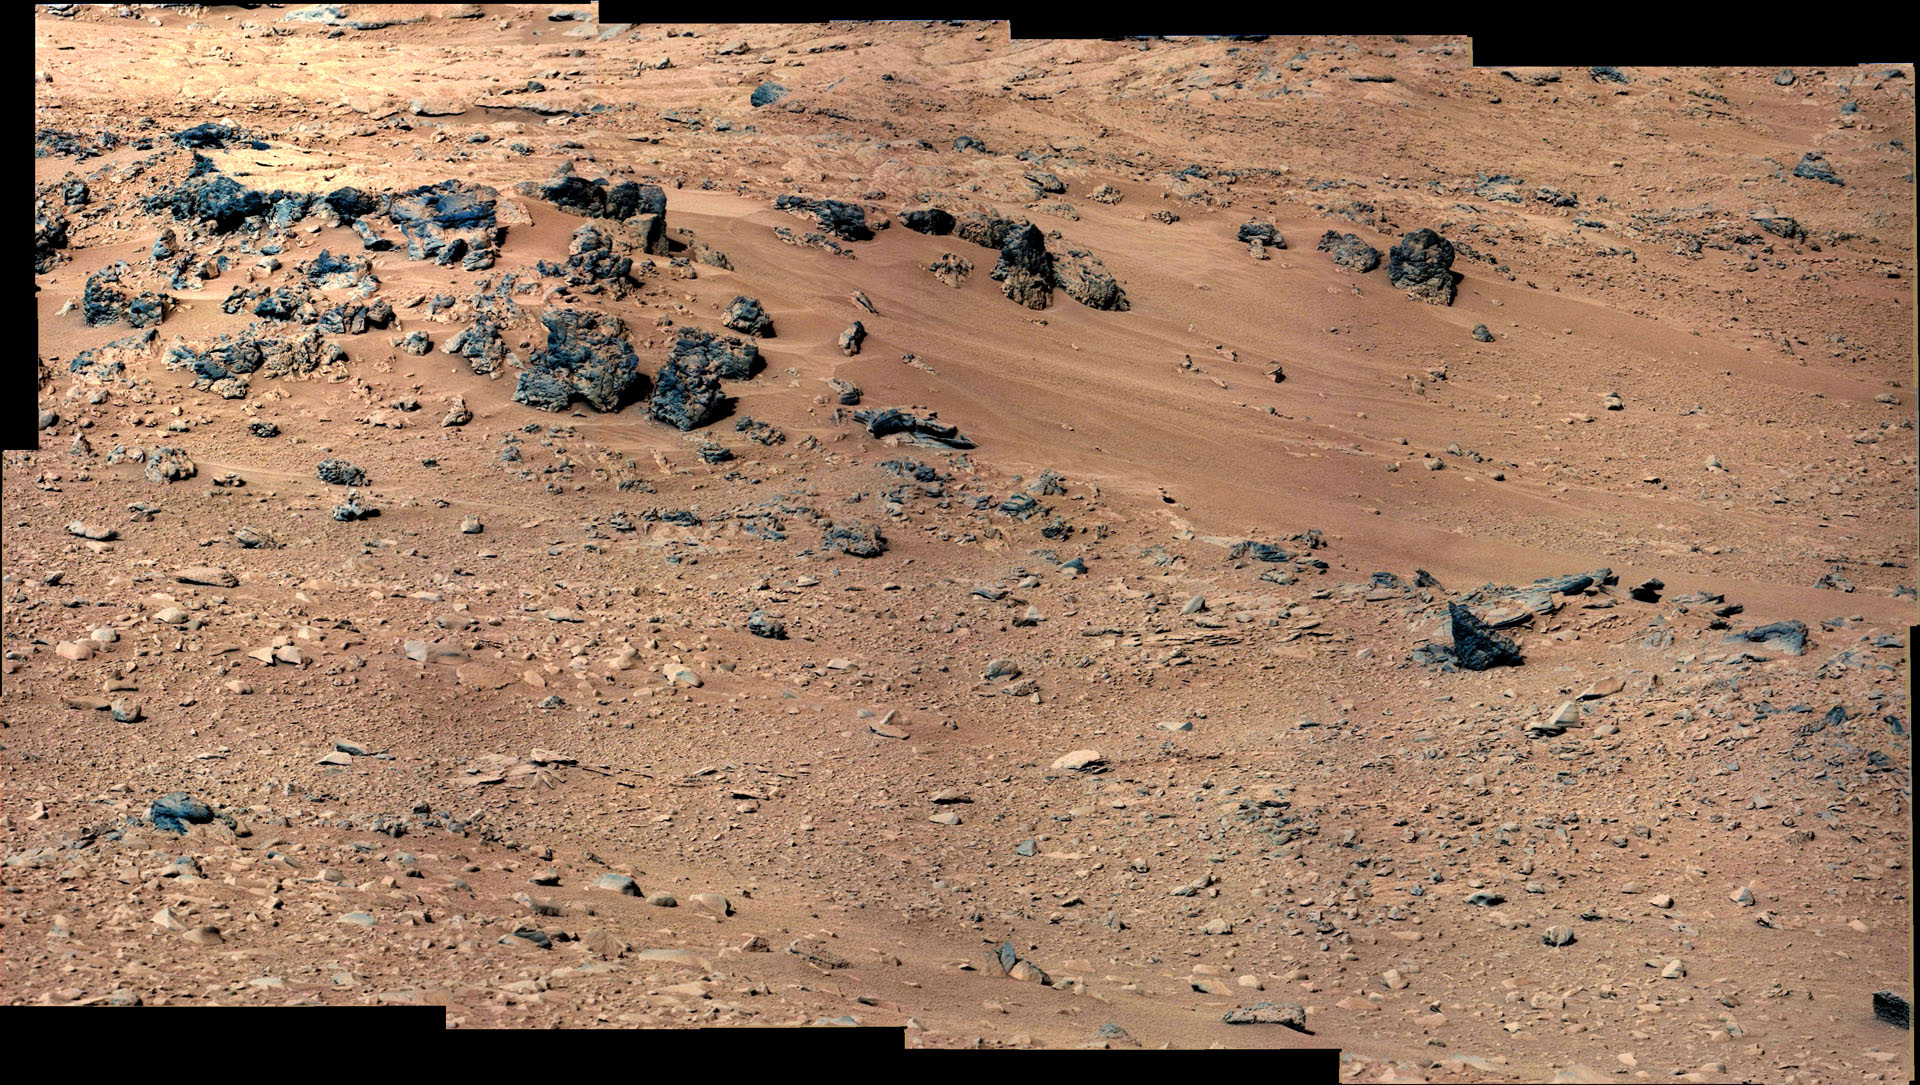 Curiosity Prepares to Take its First Scoop of Soil for ...